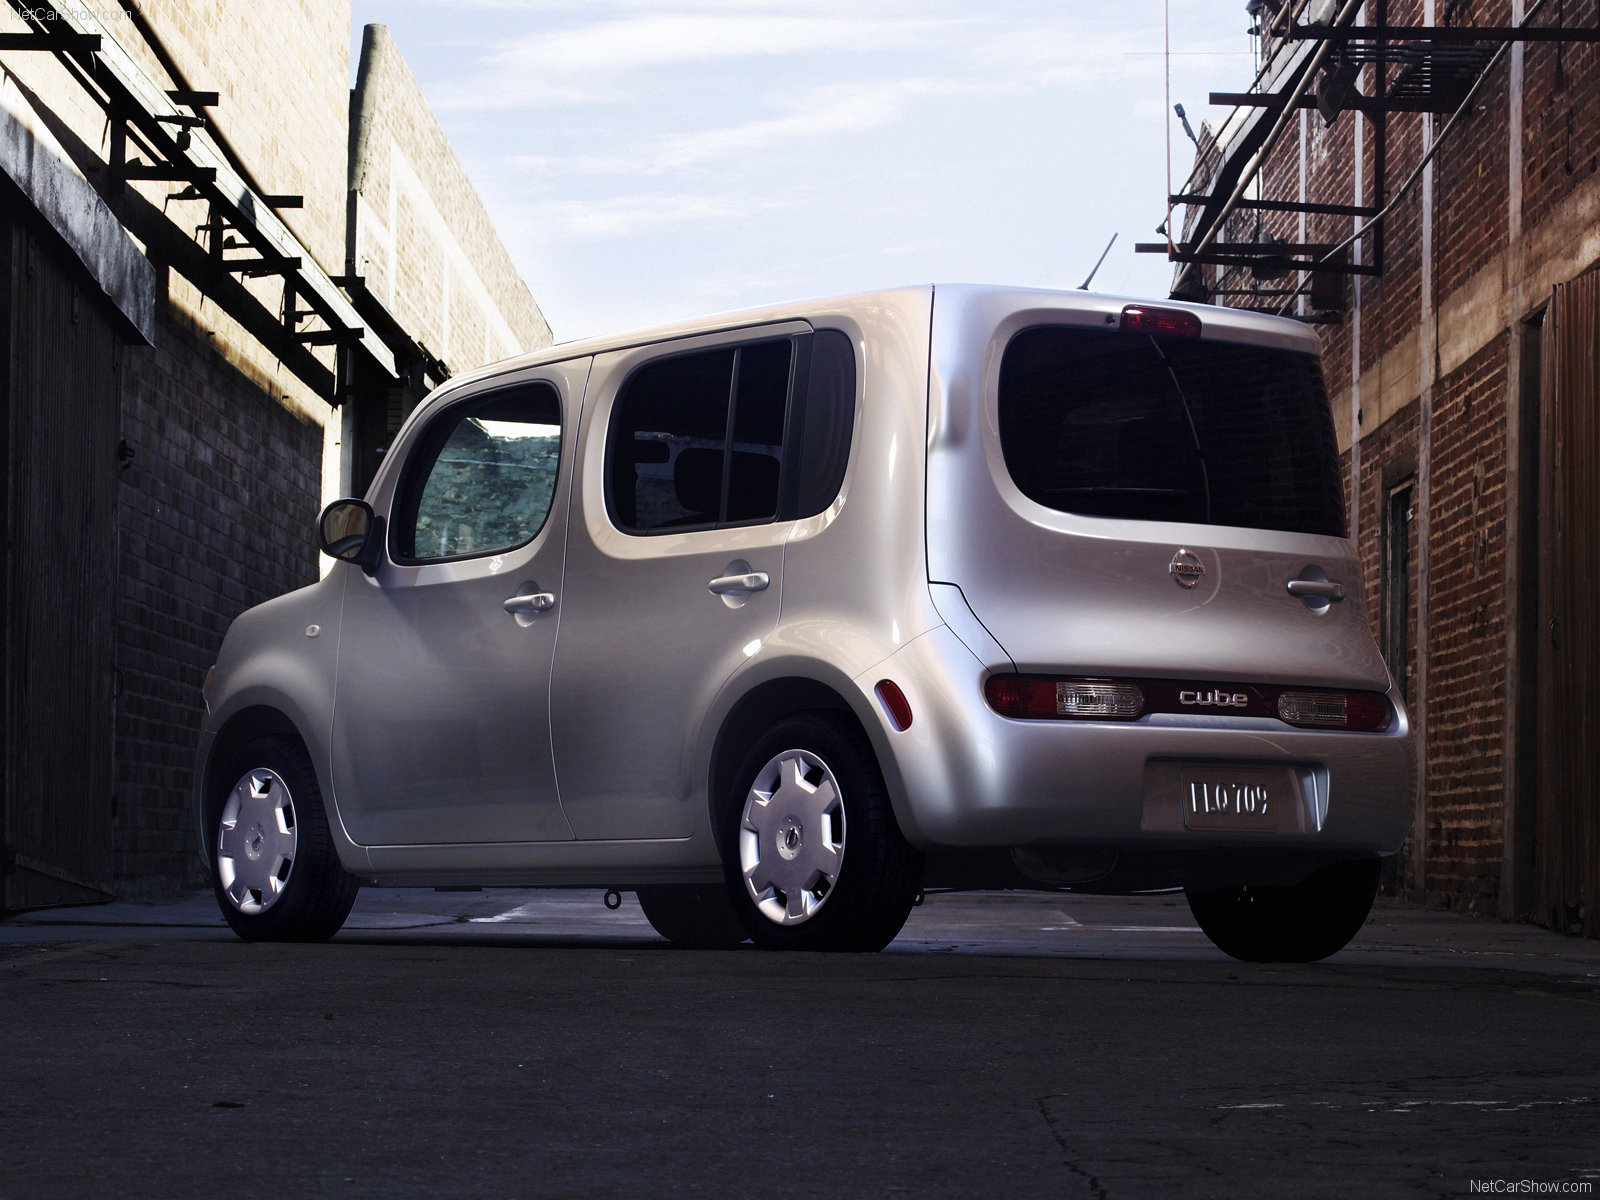 3dtuning of nissan cube van 2010 unique on. Black Bedroom Furniture Sets. Home Design Ideas